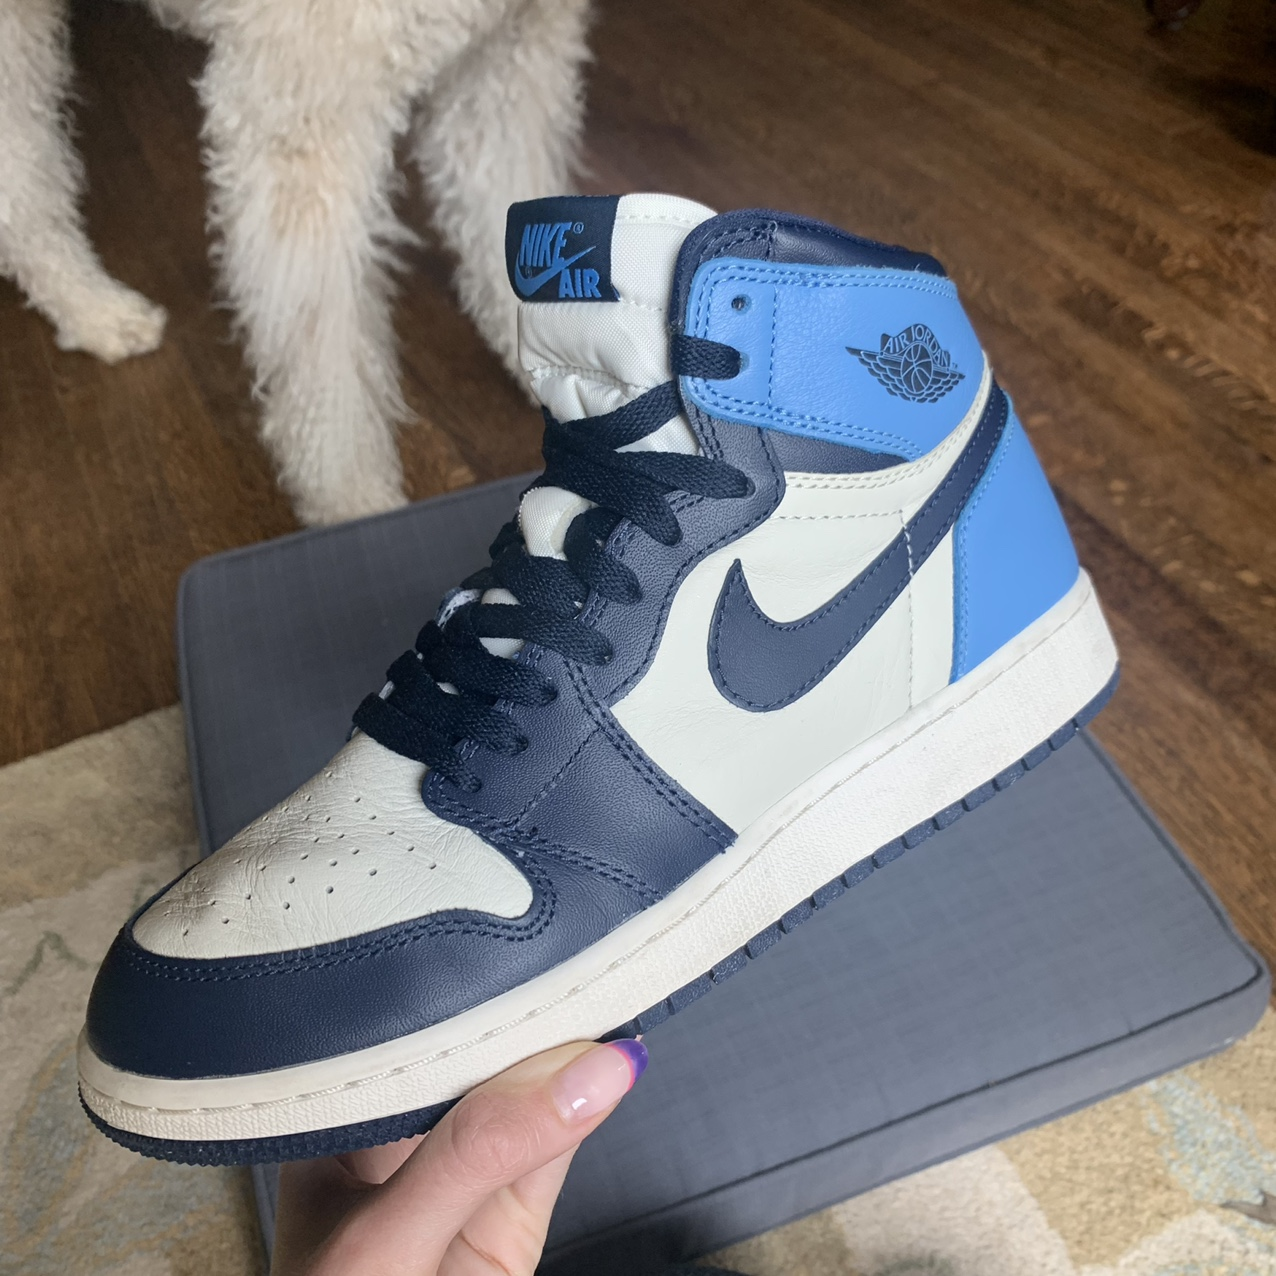 Product Image 1 - Jordan 1 Obsidian High tops Youth